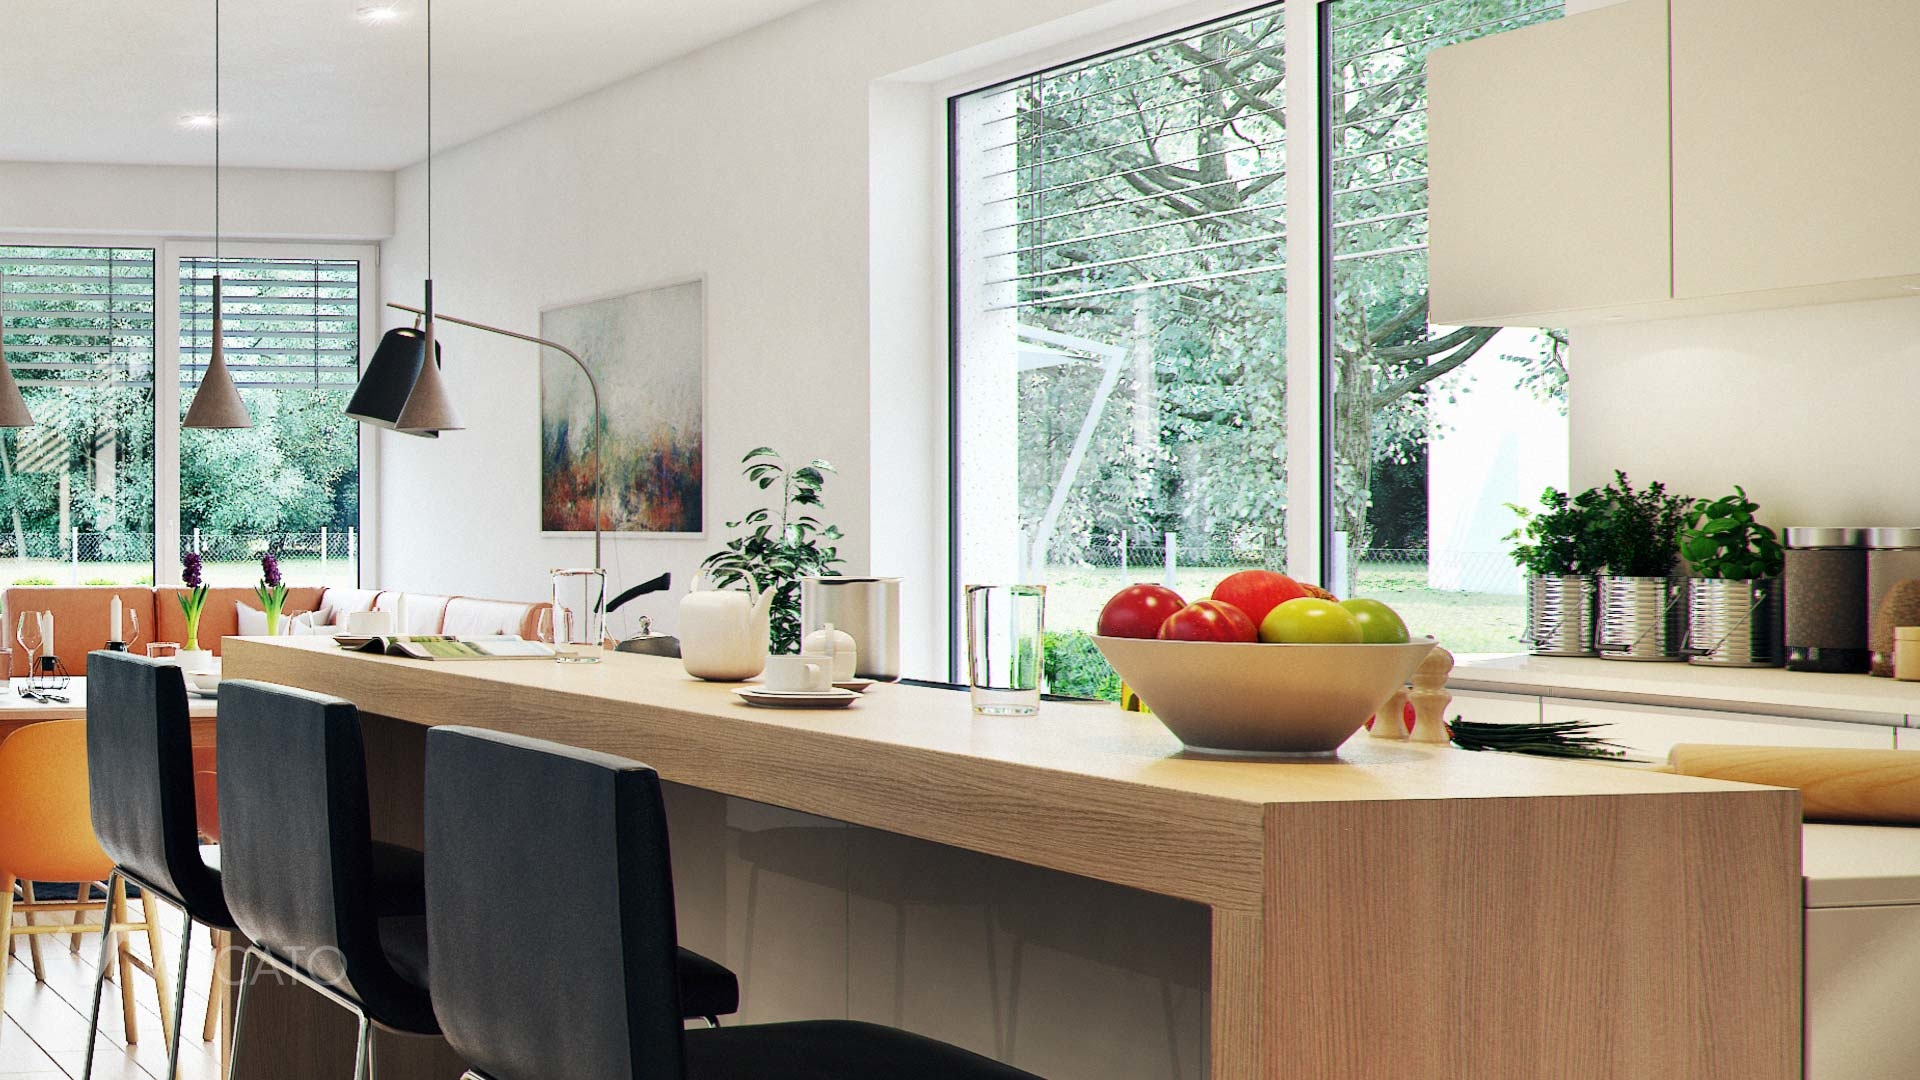 Linz twin house interior visualization with detail of kitchen and fruits